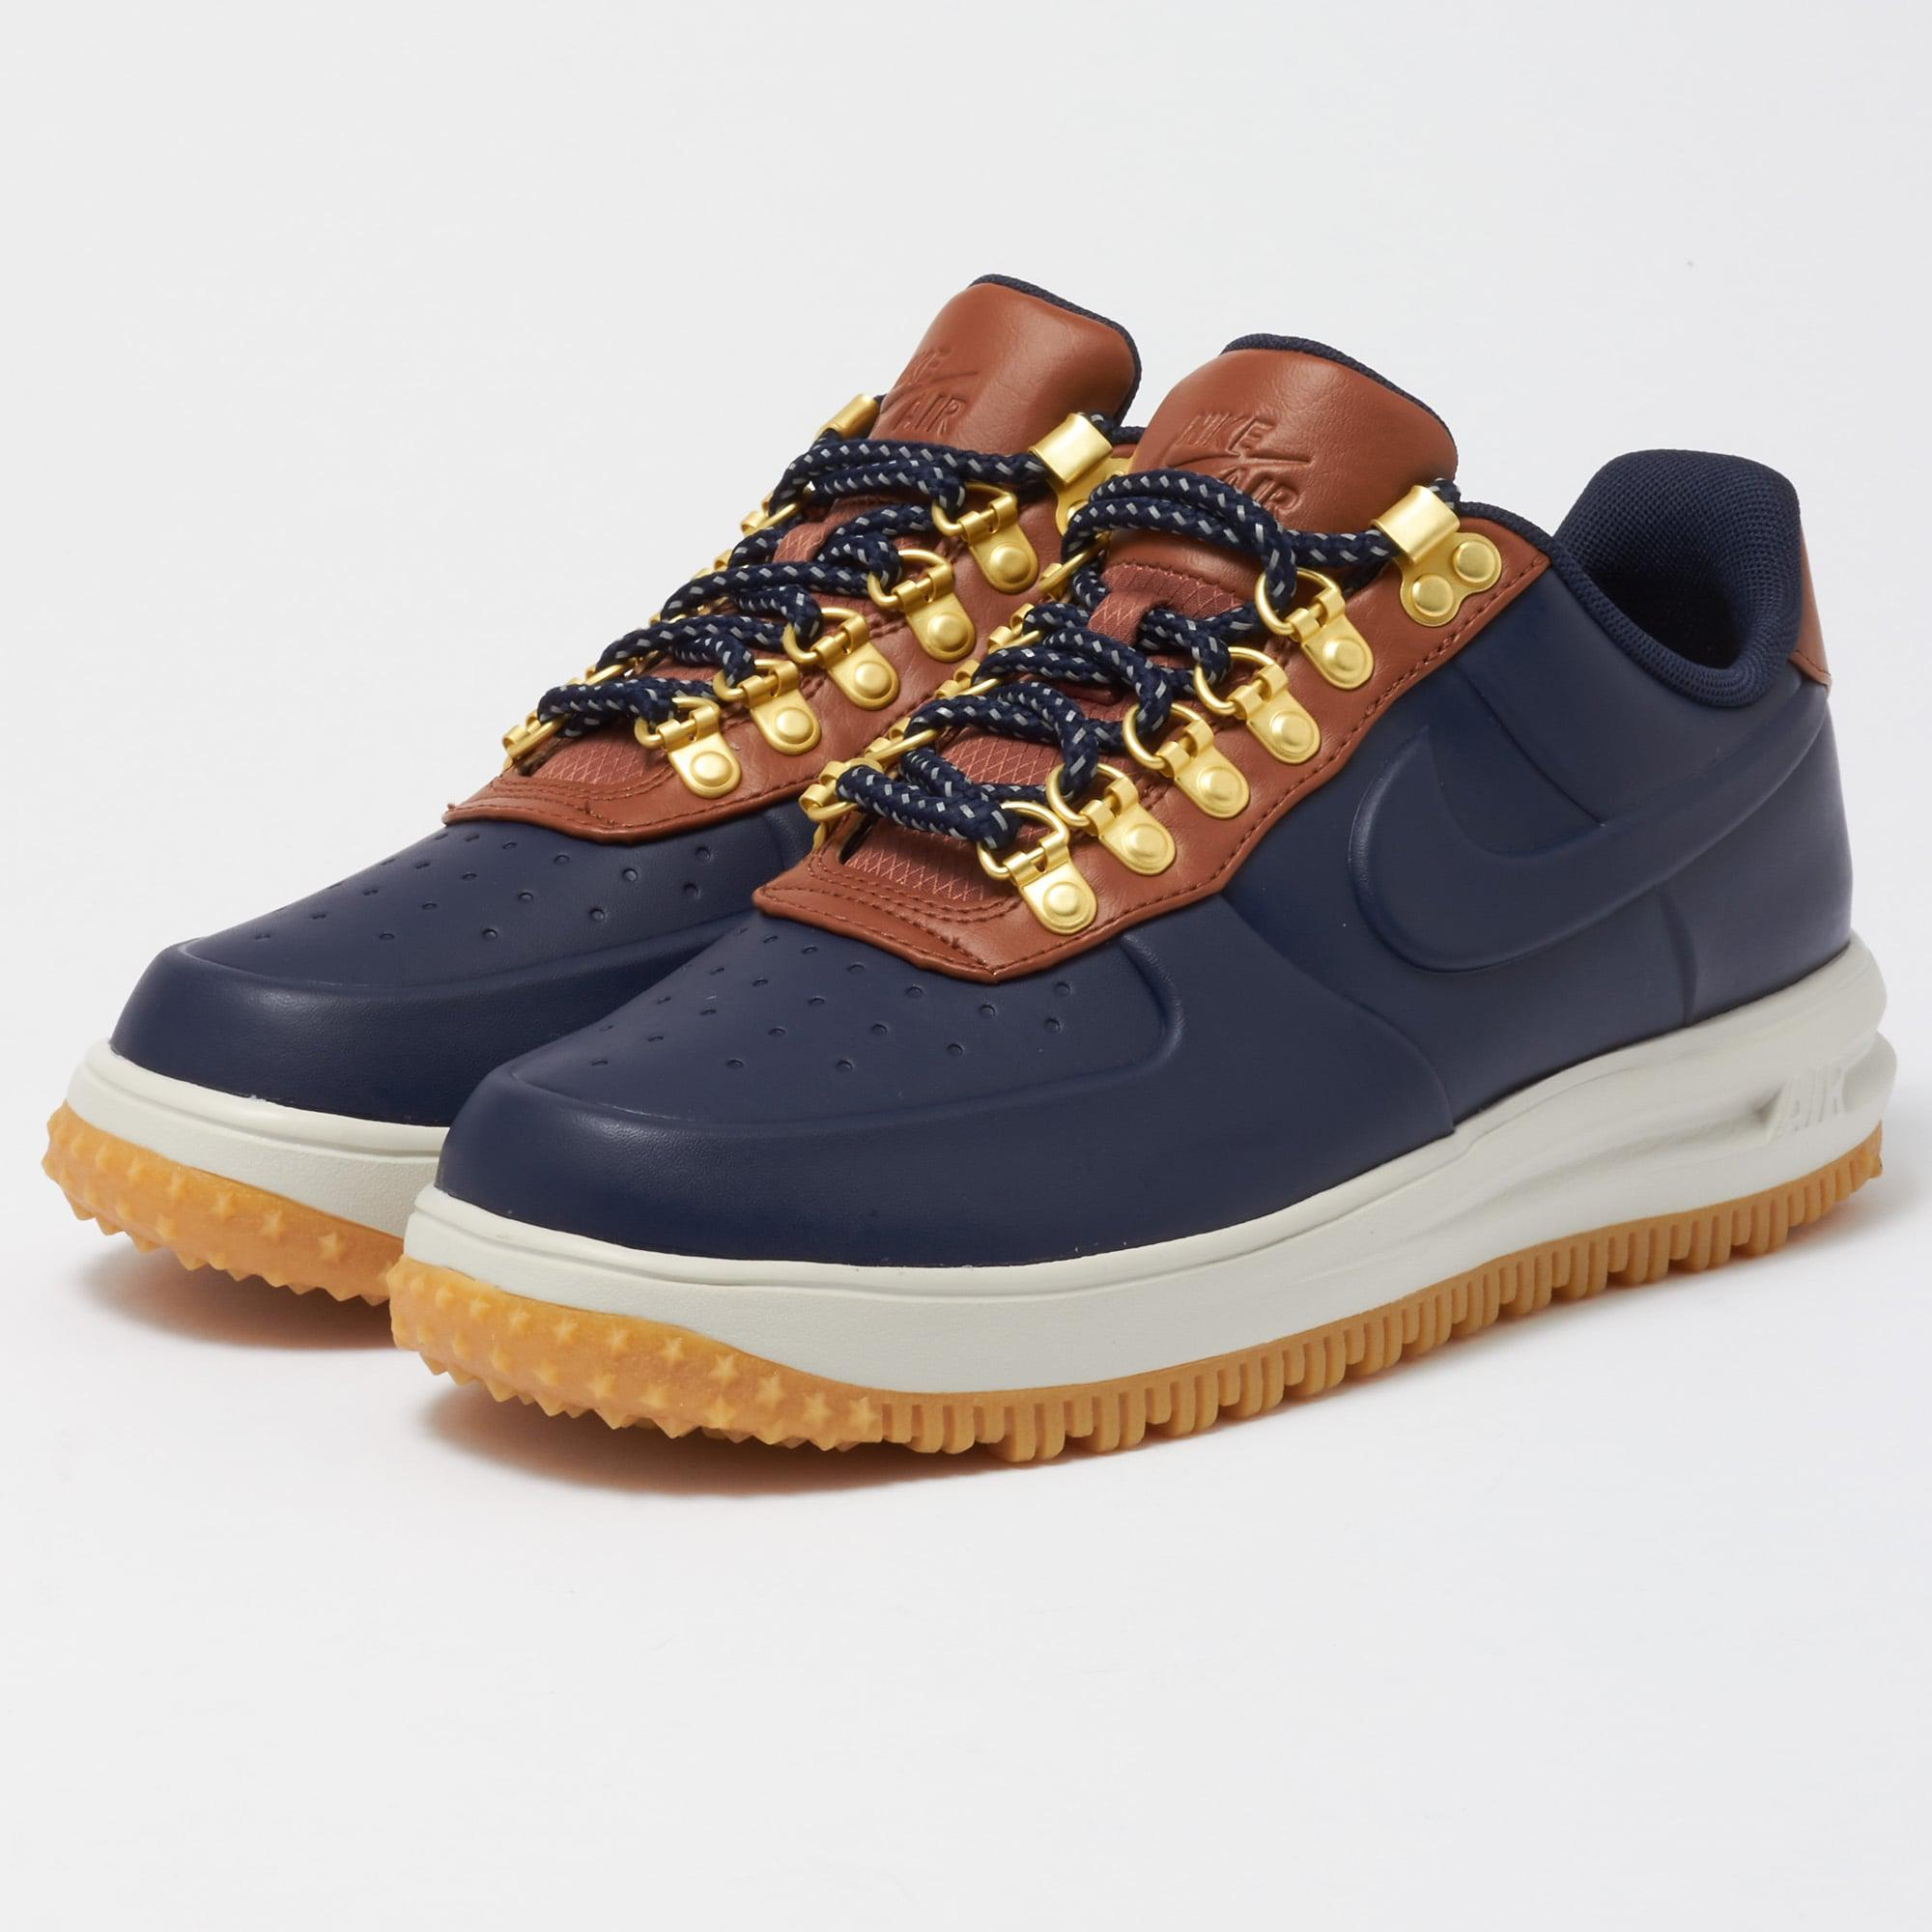 official photos ed29b 4bb48 Nike Lunar Force 1 Duckboot Low - Obsidian   Saddle Brown in Brown ...